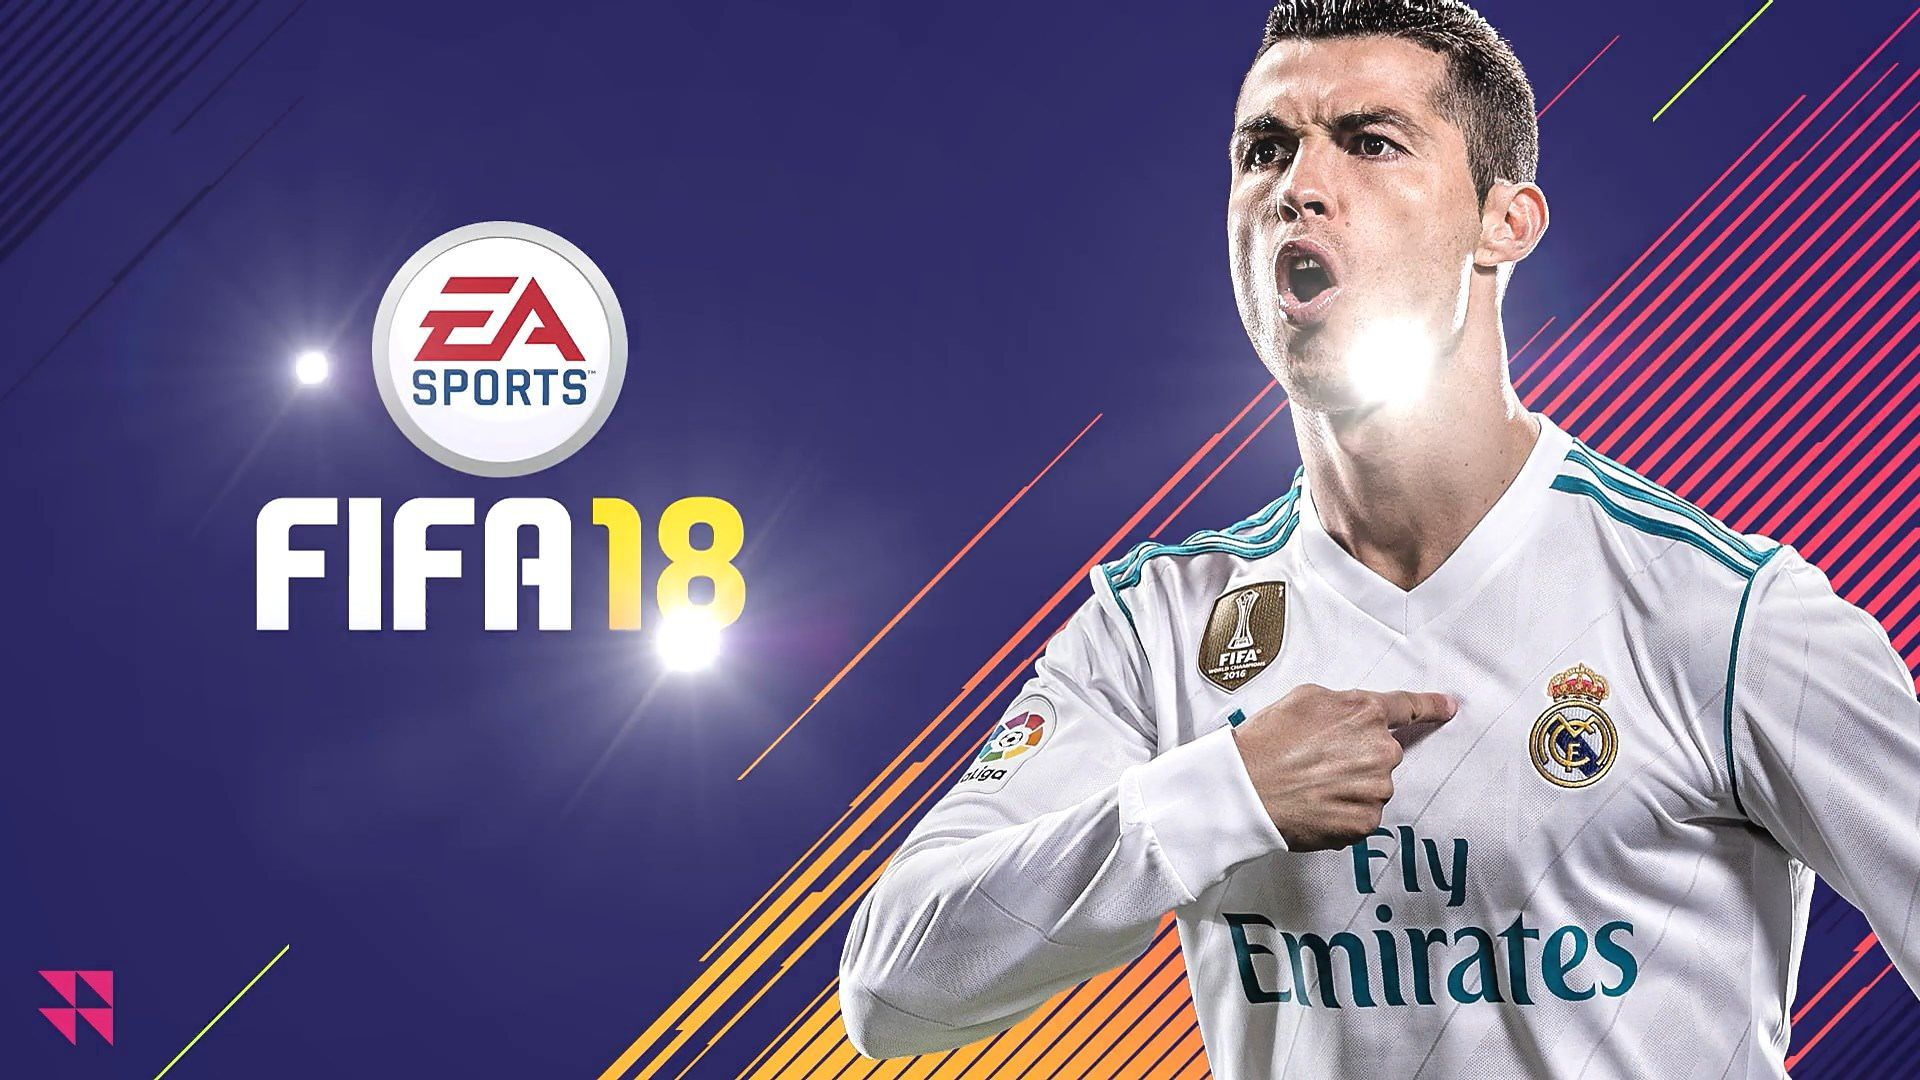 Top Free 3D FIFA Backgrounds